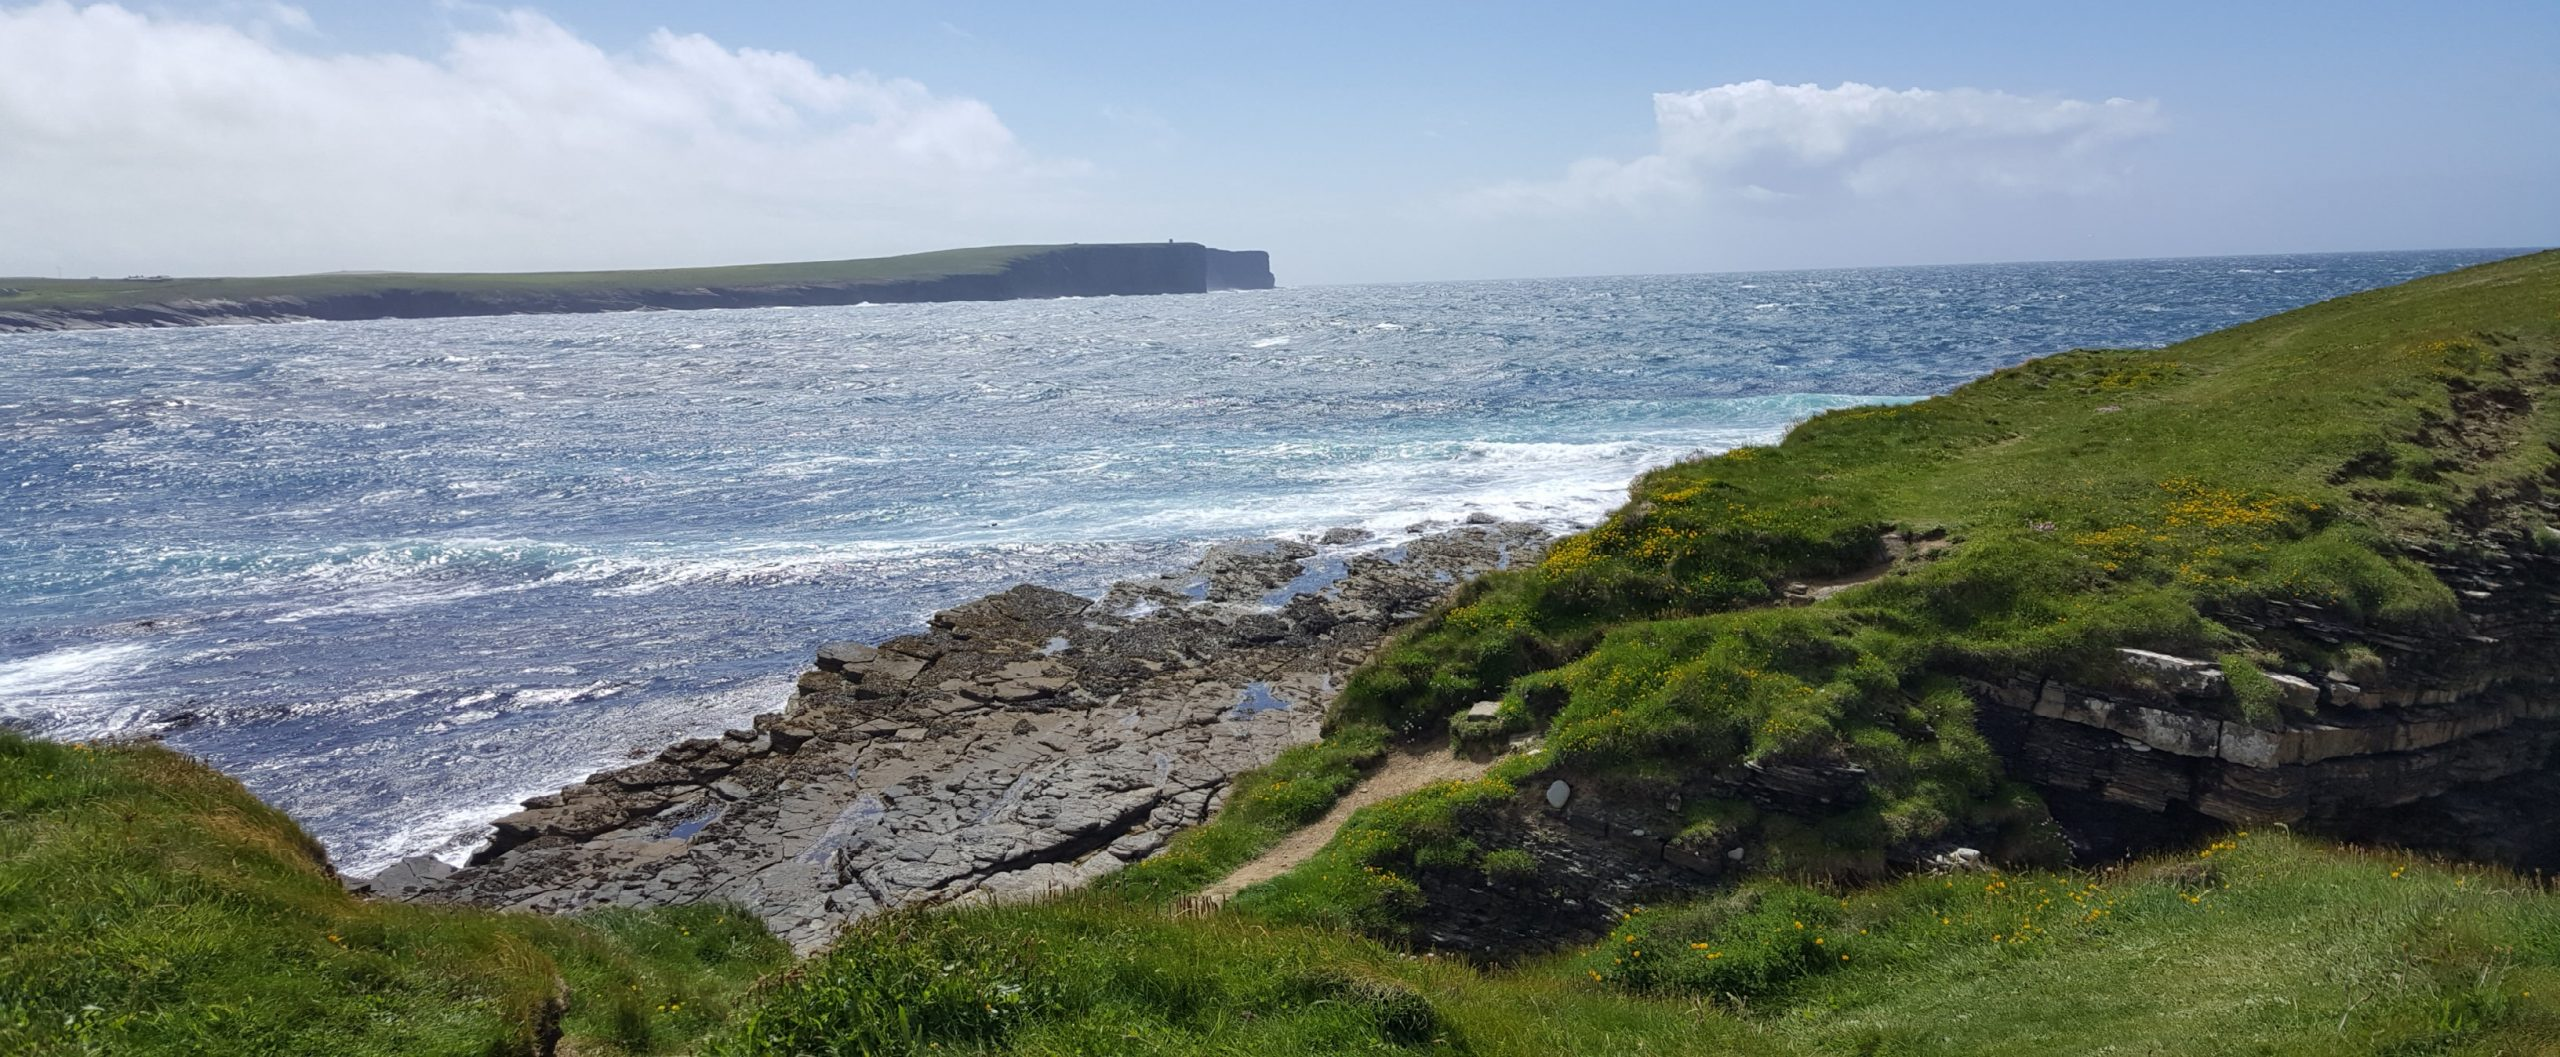 ACCESSING THE PAST ON ORKNEY